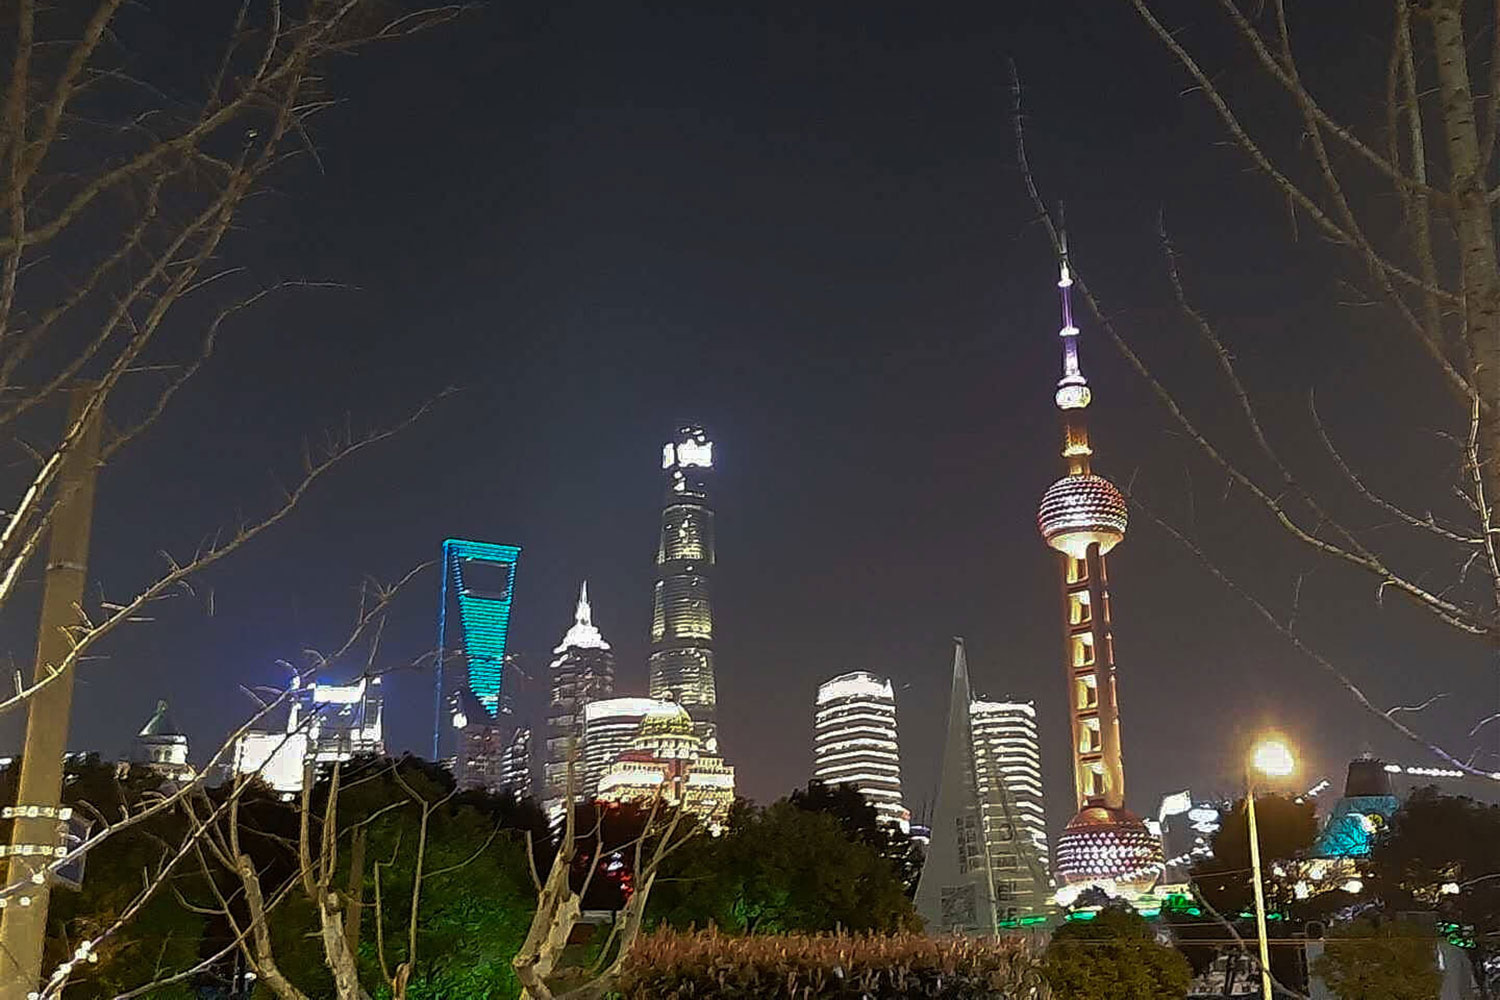 Distinctive illuminated skyscrapers of the global metropolis Shanghai at night. They shape the scape of the city and suggest an impression of modernity and innovation.